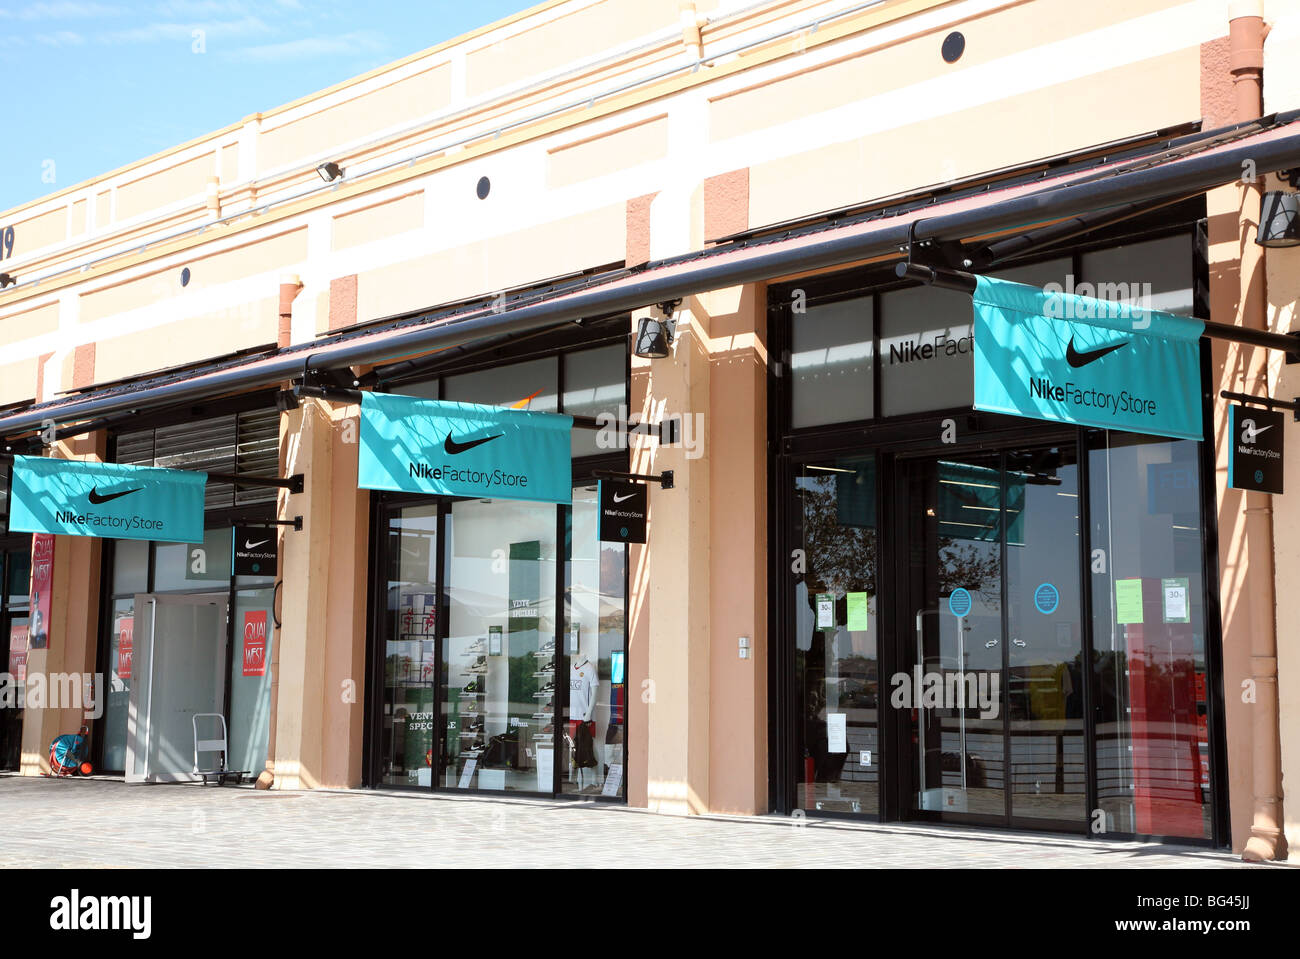 4b29f7b8f3 Nike Shop Window Stock Photos & Nike Shop Window Stock Images - Alamy